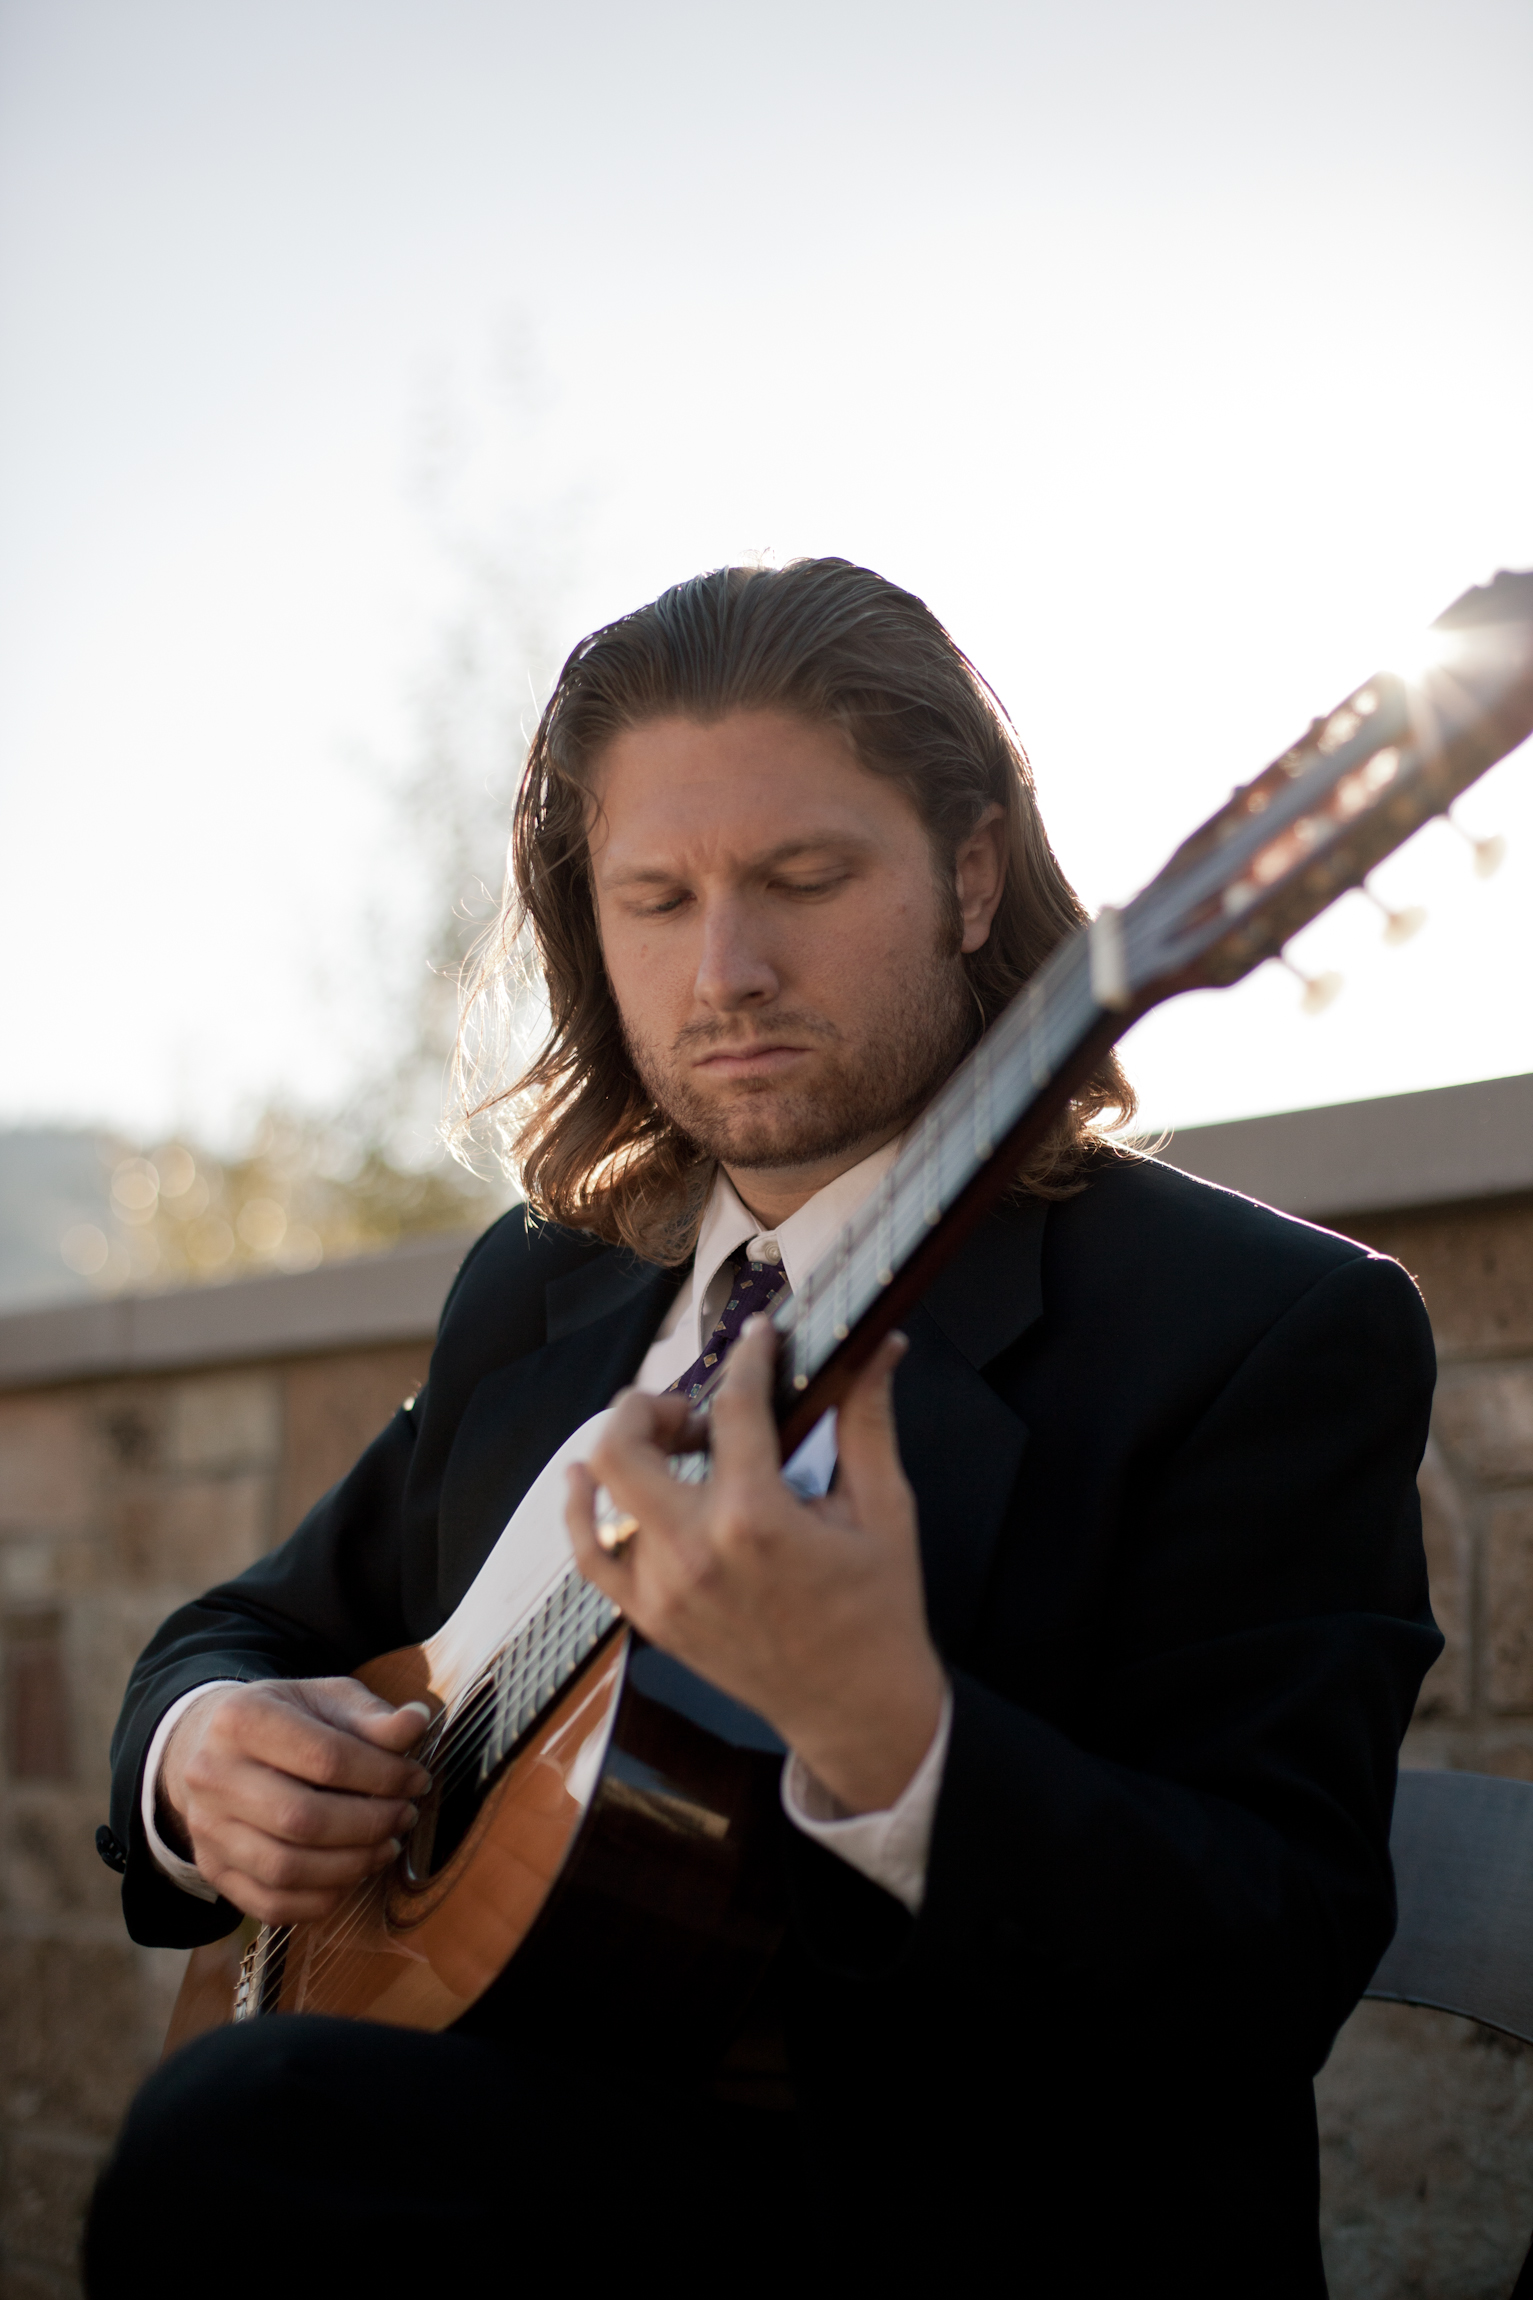 A classical guitarist is an easy way to make your ceremony special